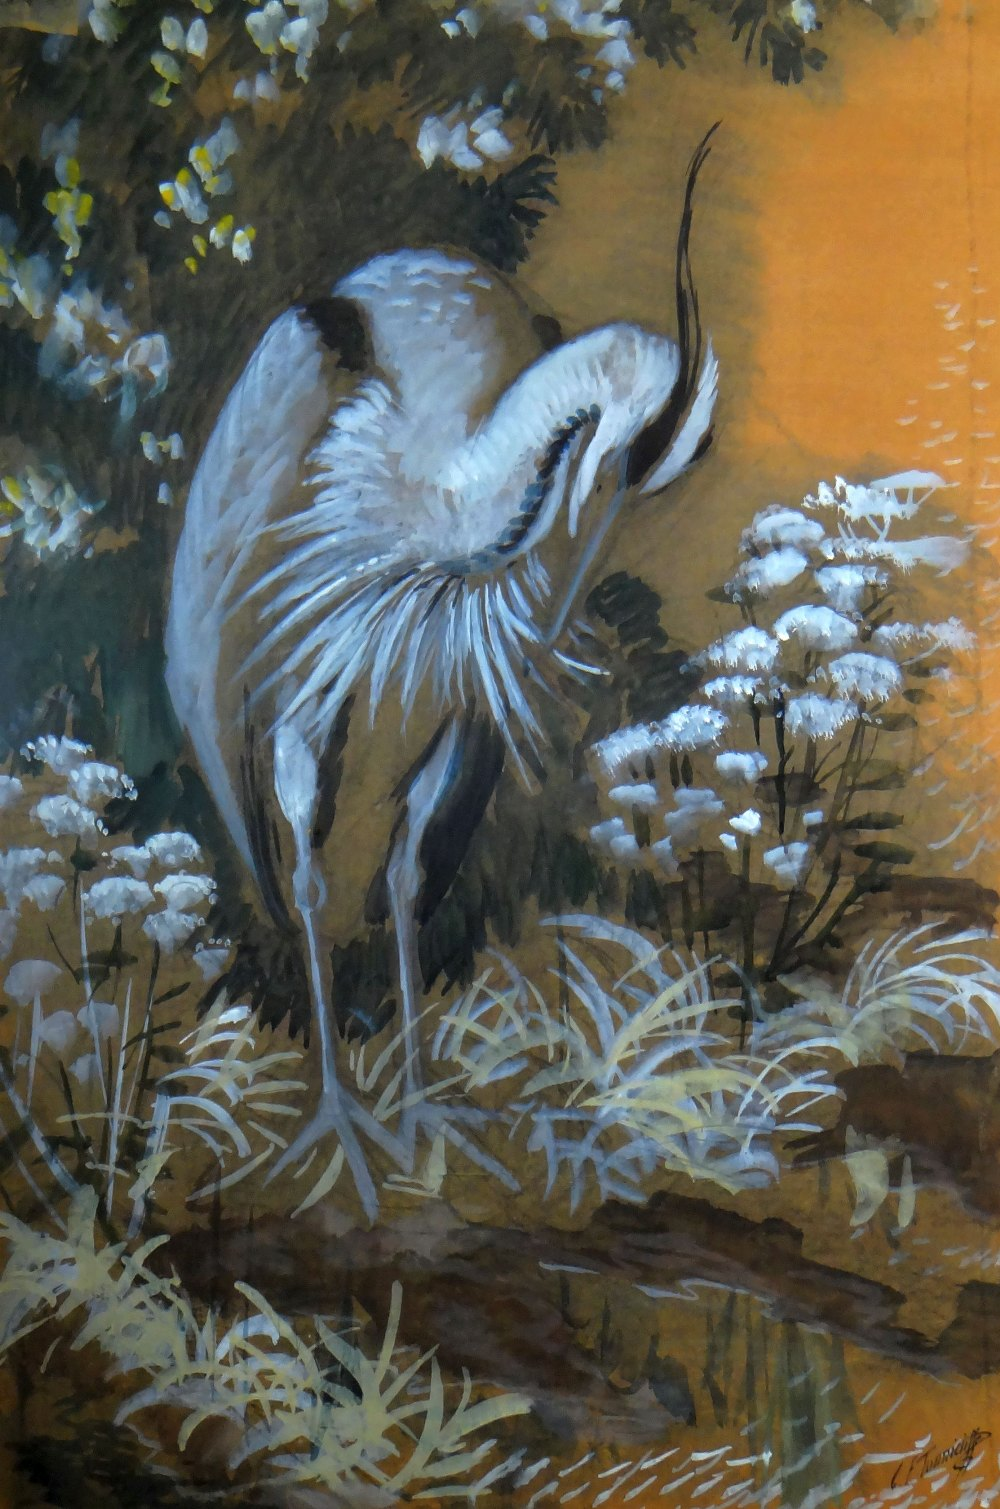 Lot 141 - CHARLES FREDERICK TUNNICLIFFE watercolour and pencil - study of a grey heron amongst vegetation,